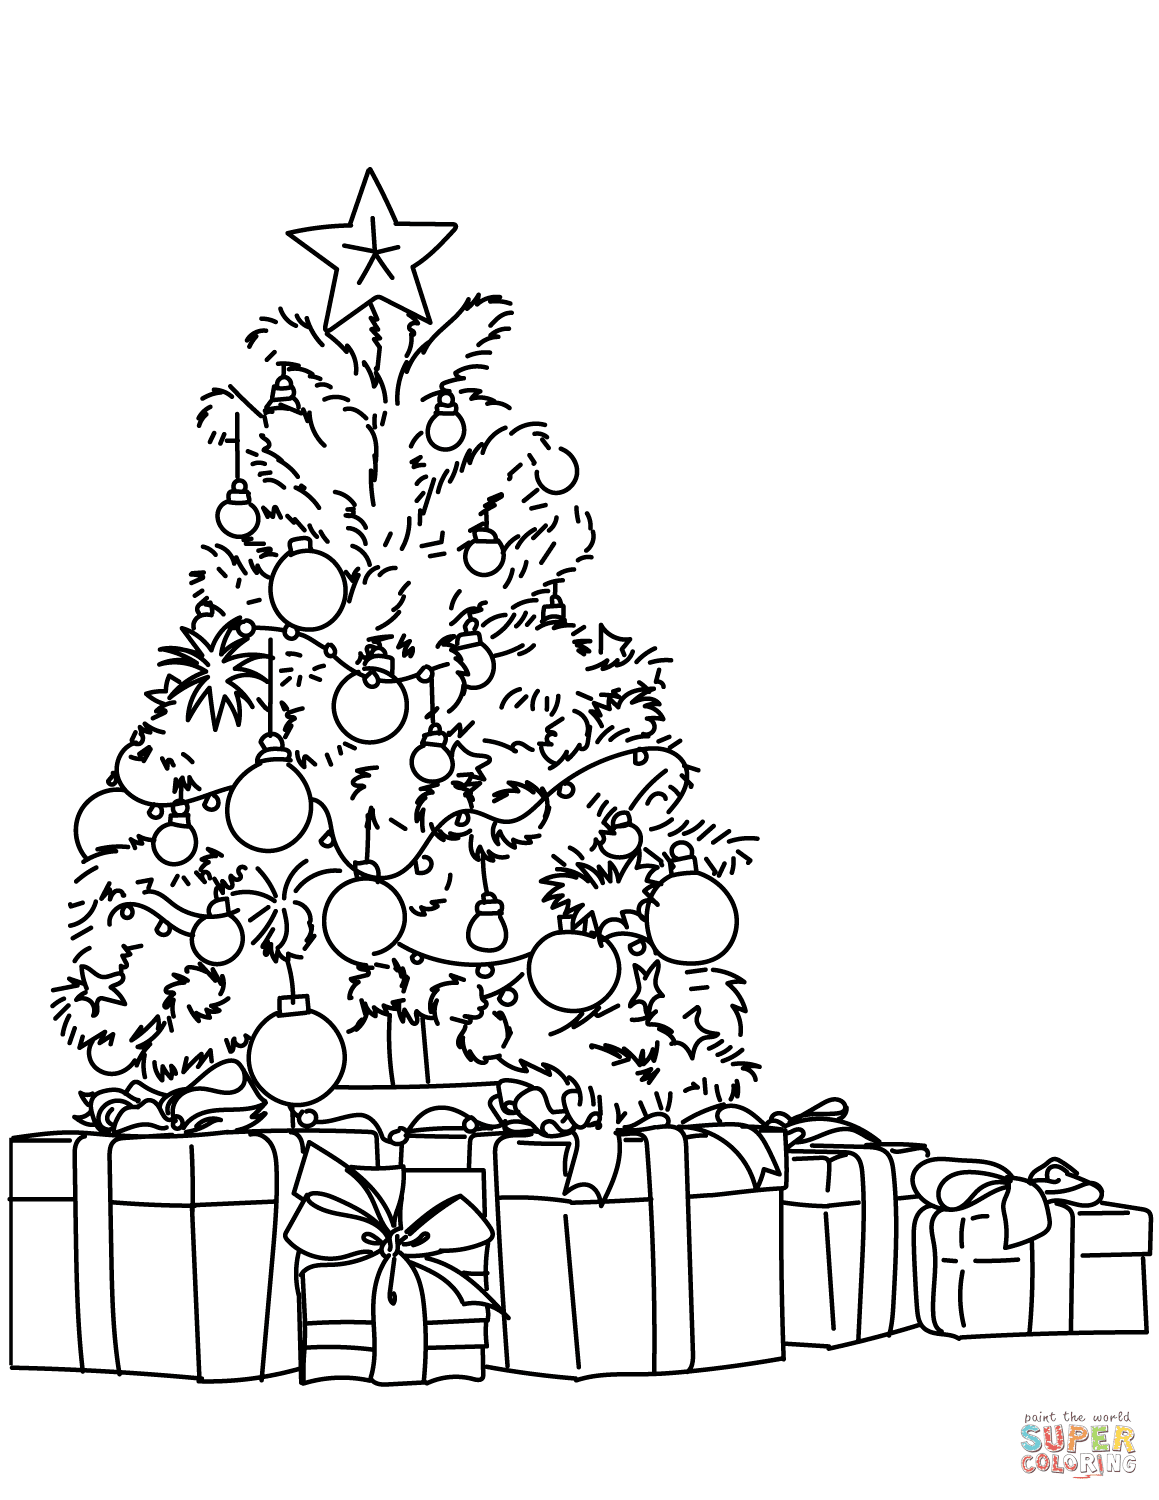 Lots of Gifts Around the Christmas Tree coloring page ...